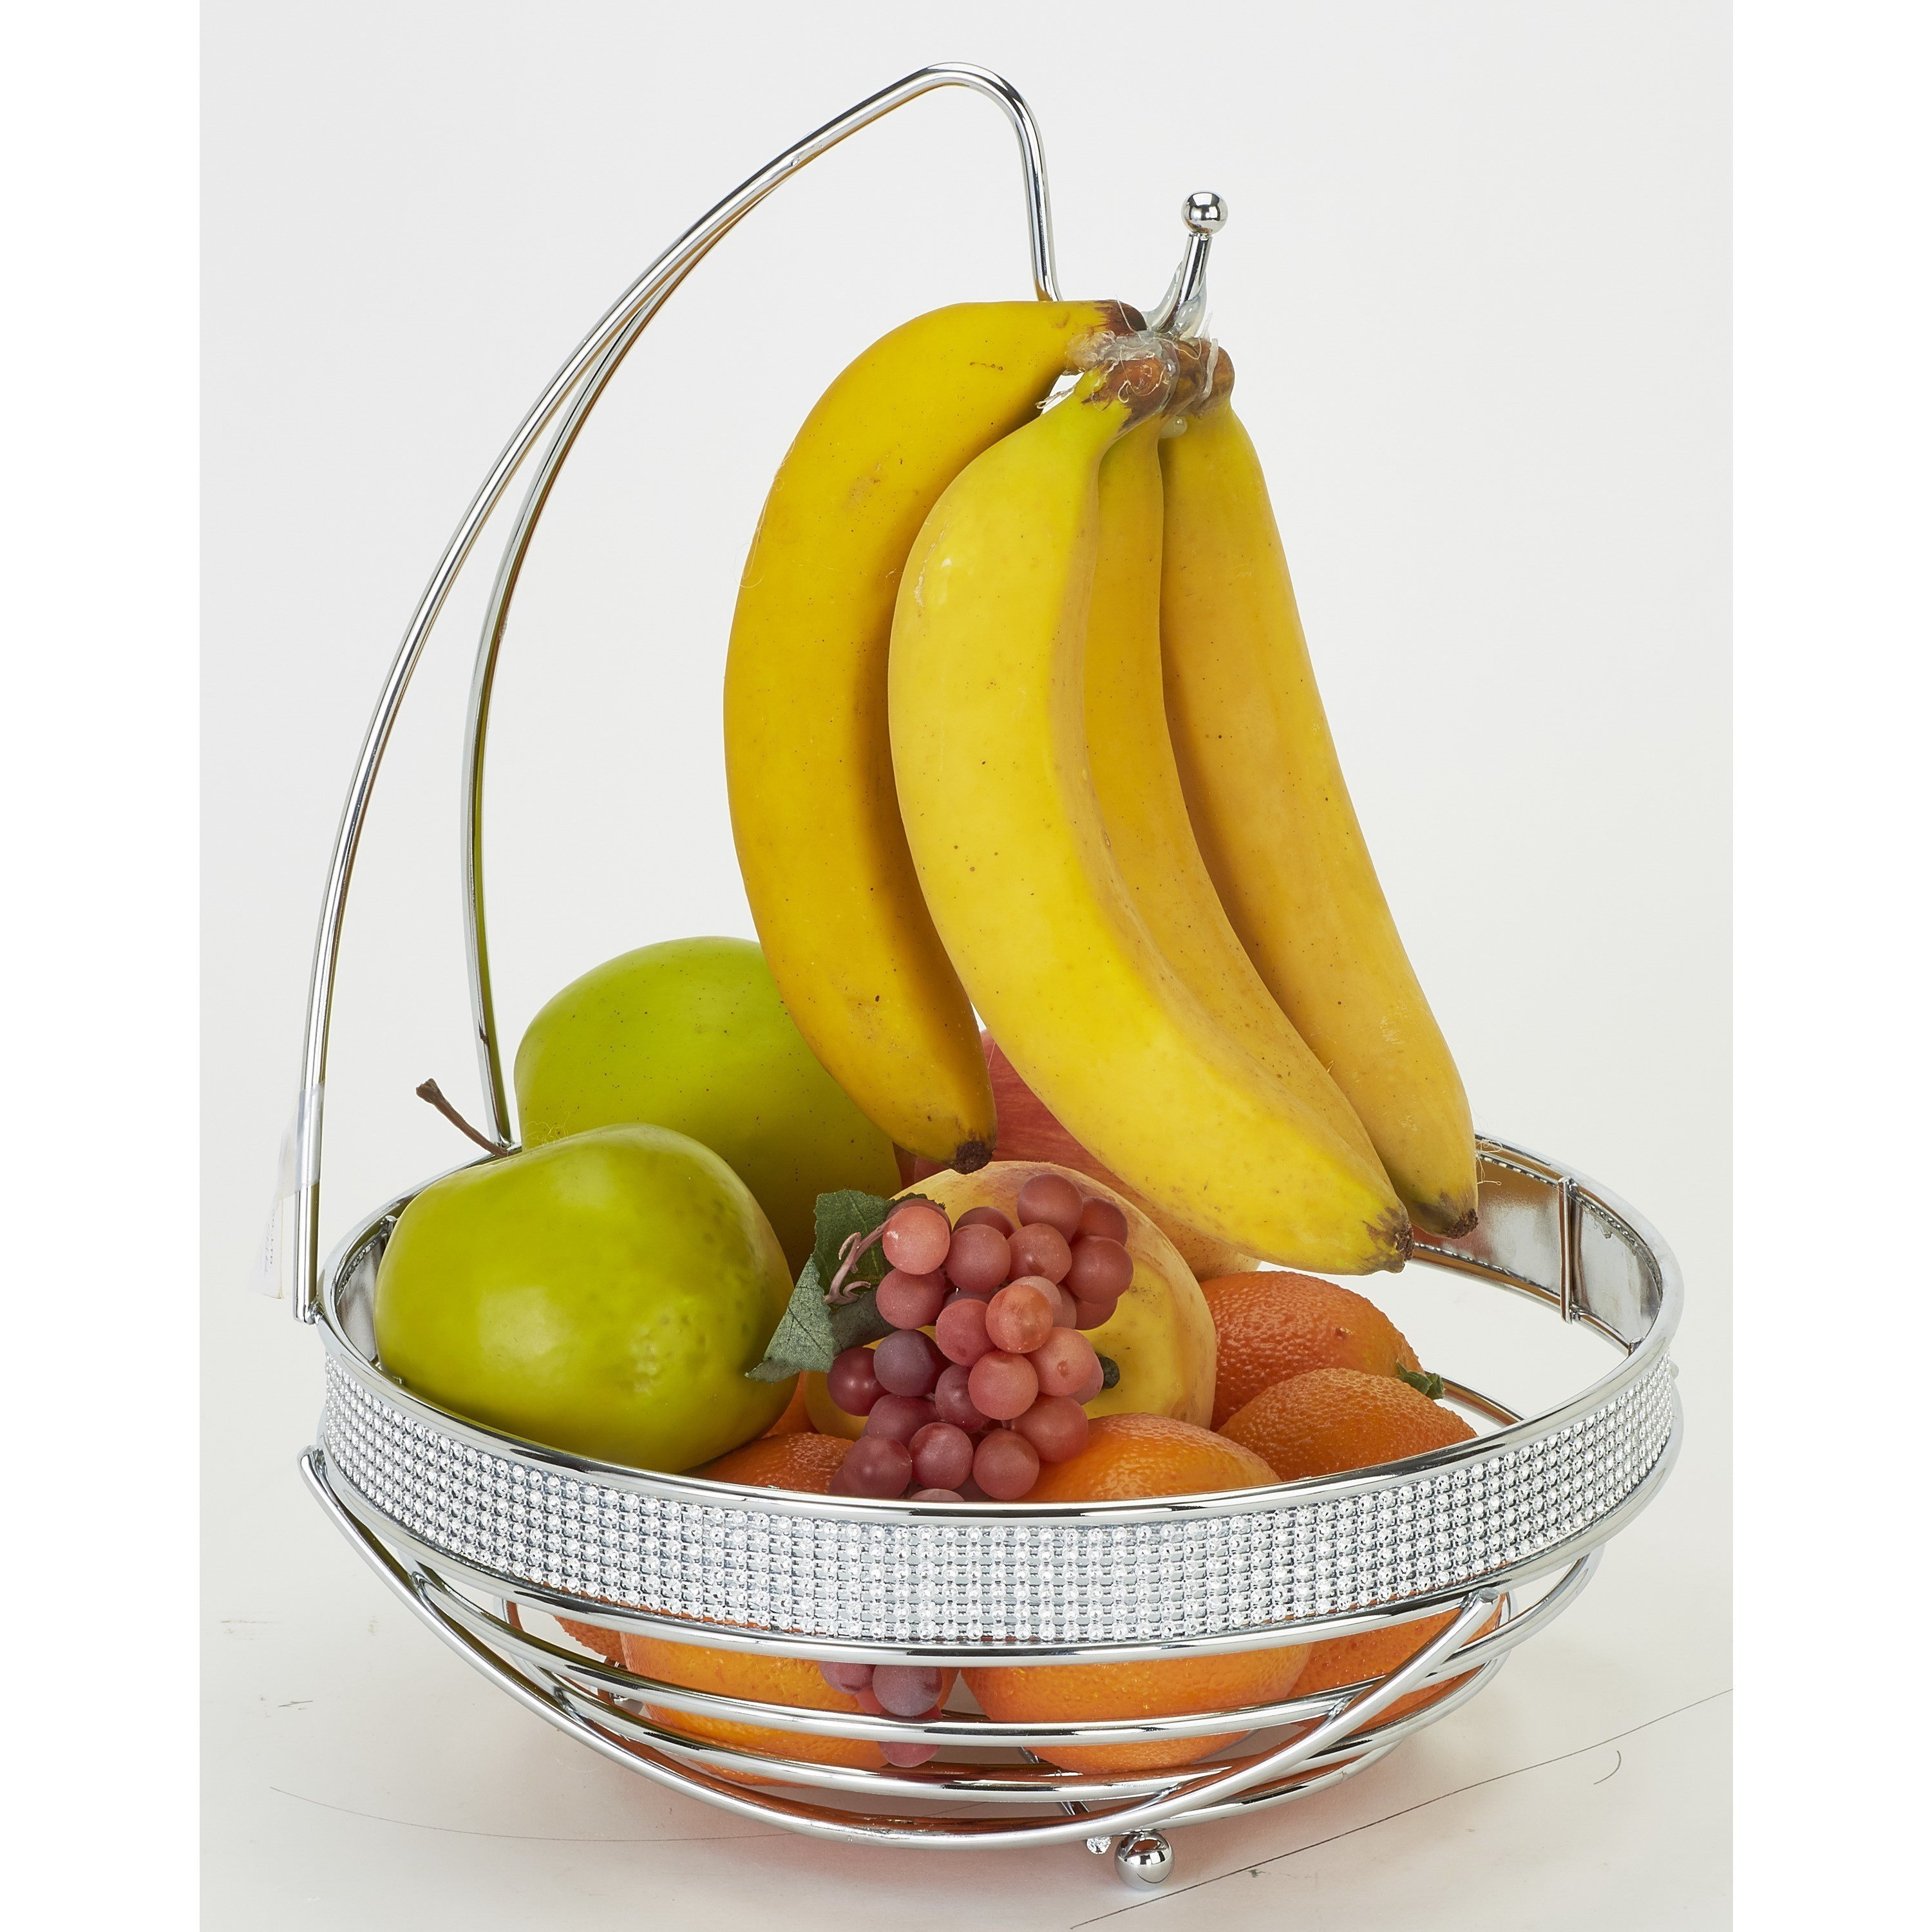 Simplify Round Fruit Basket with Banana Tree, Chrome Pave Diamond Design